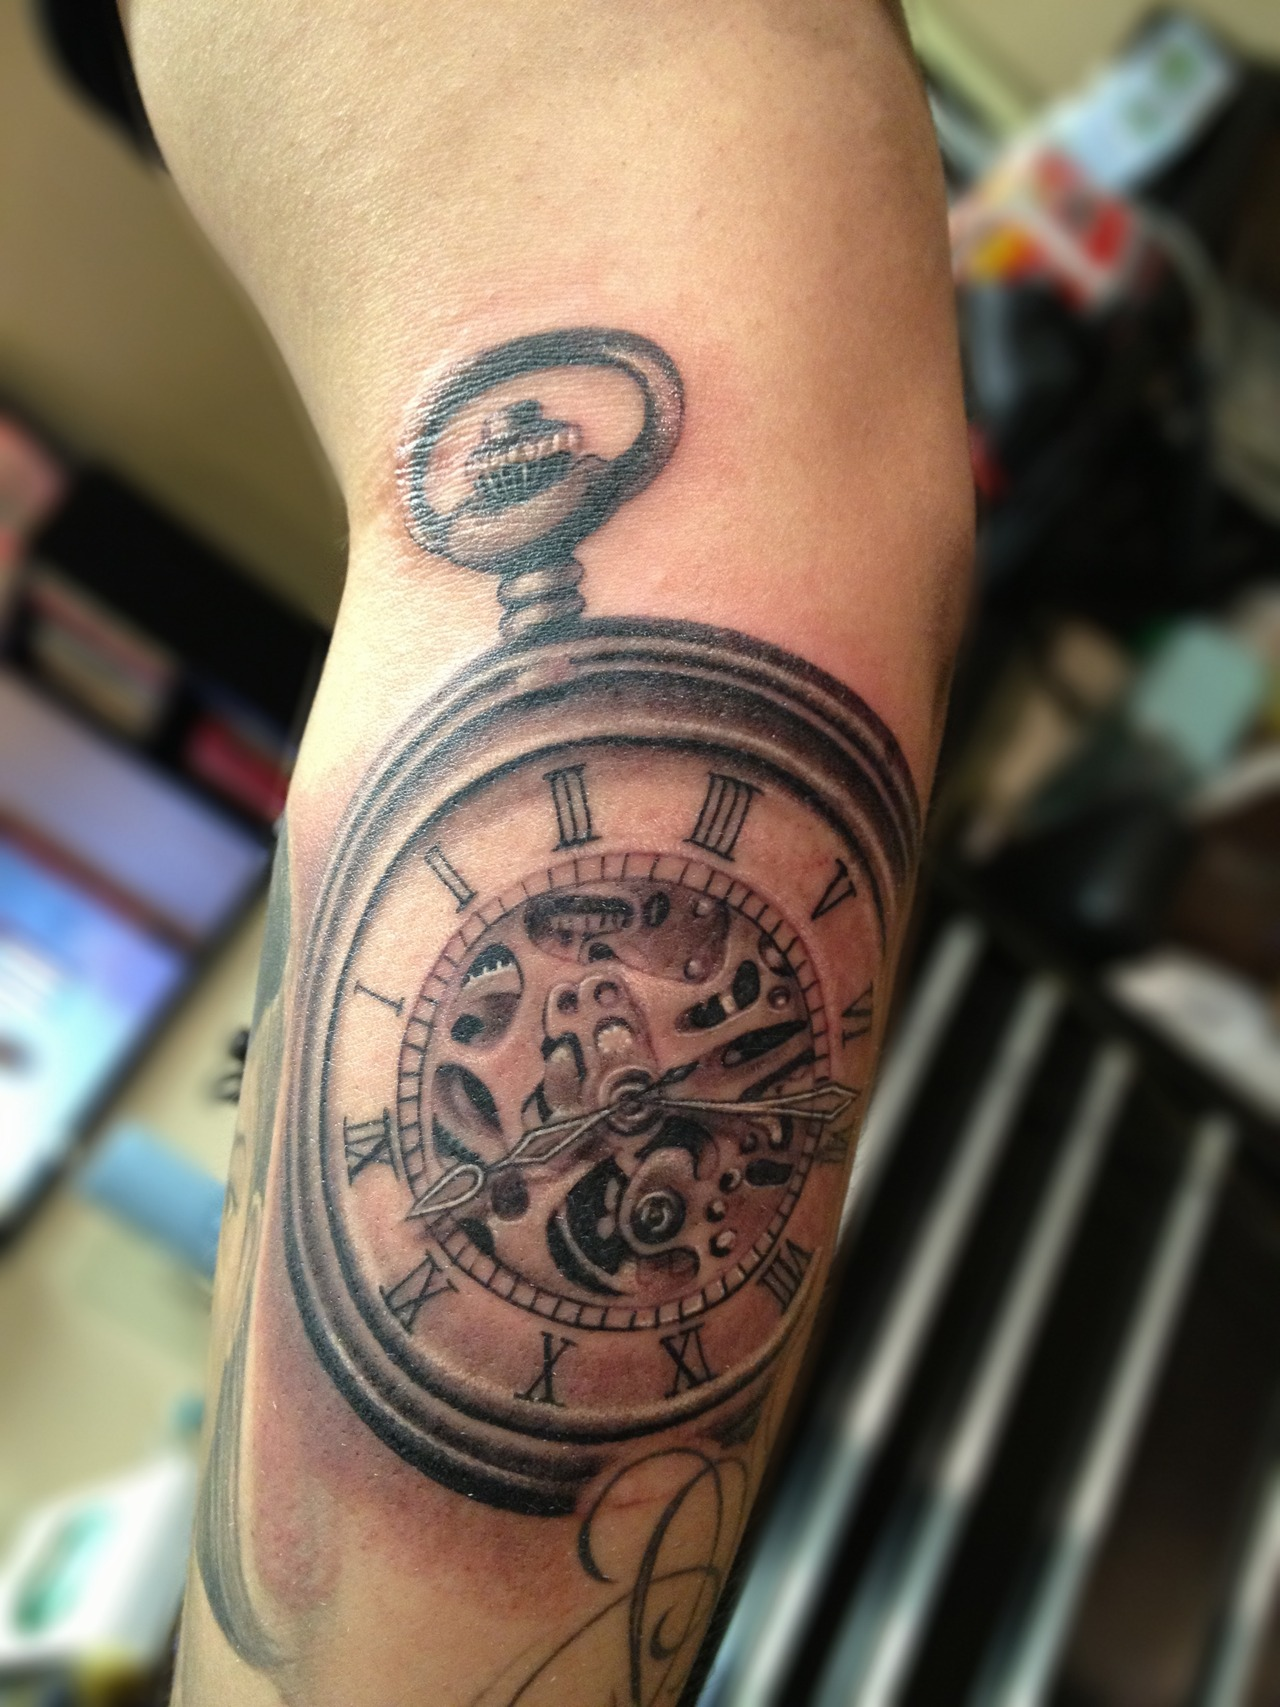 pocket watch tattoos designs ideas and meaning tattoos ForPocket Watches Tattoos